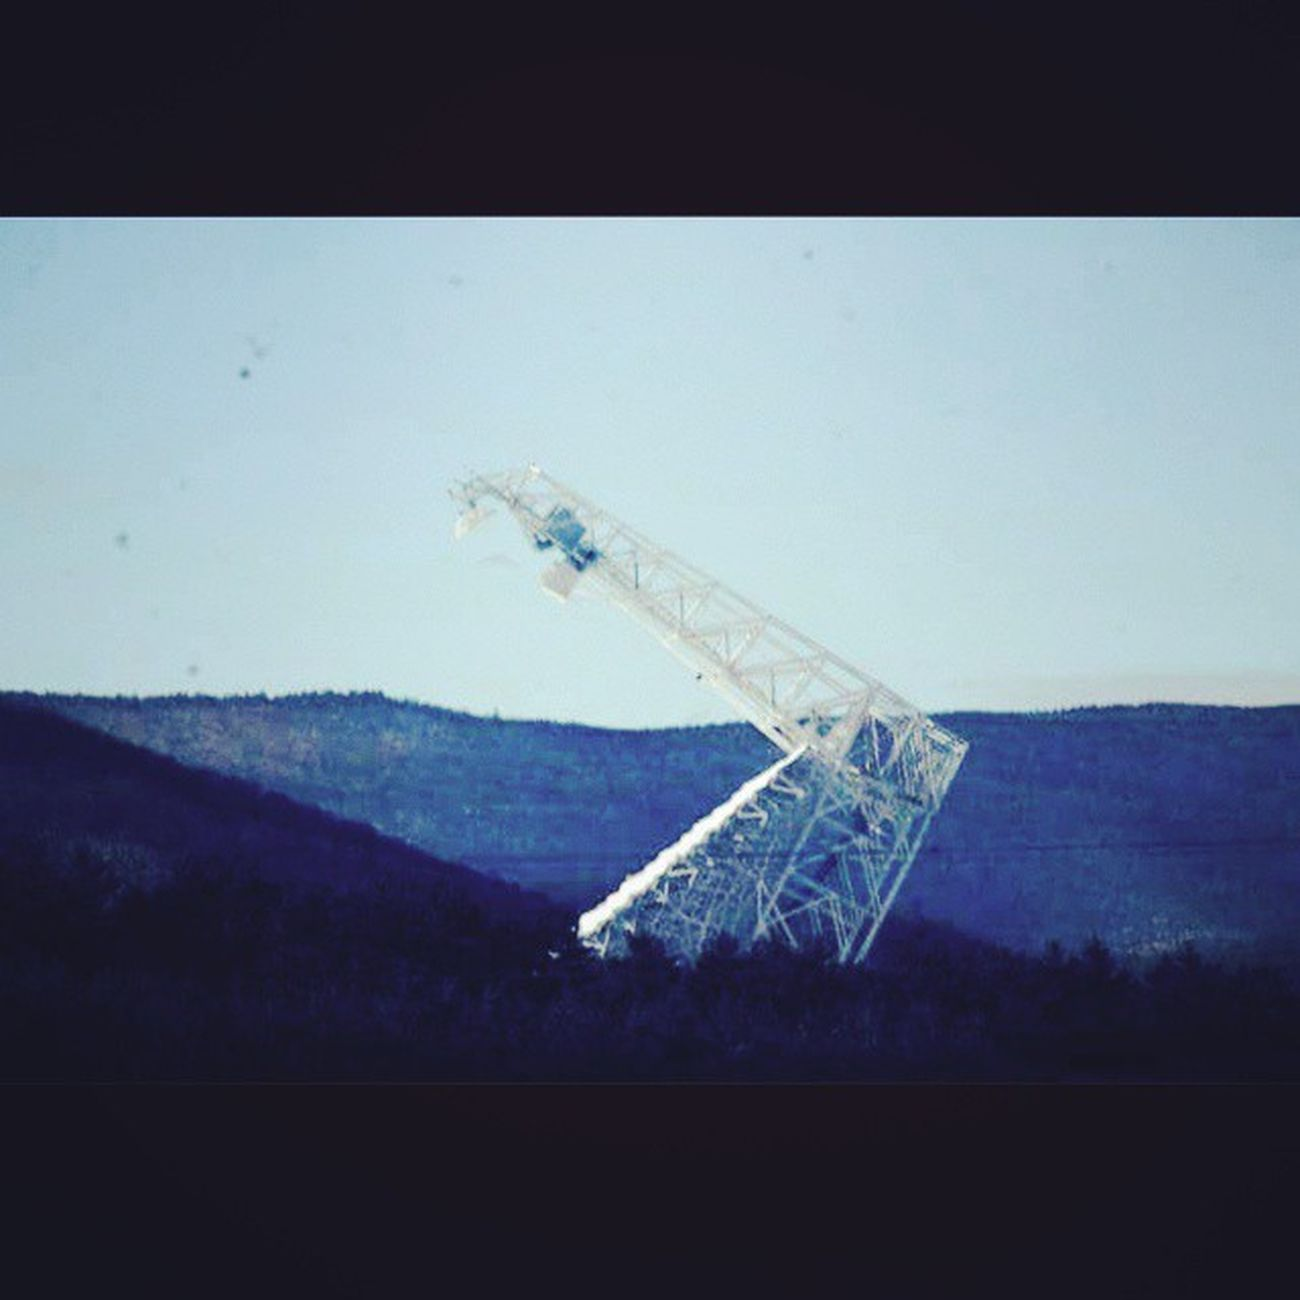 Greenbank Observatory Appalachia Westvirginia igers_of_wv landscape_captures fiftyshades_of_nature ipulledoverforthis icu_usa jj_unitedstates ig_addicts rsa_rural wv_igers wv_nature trb_rural